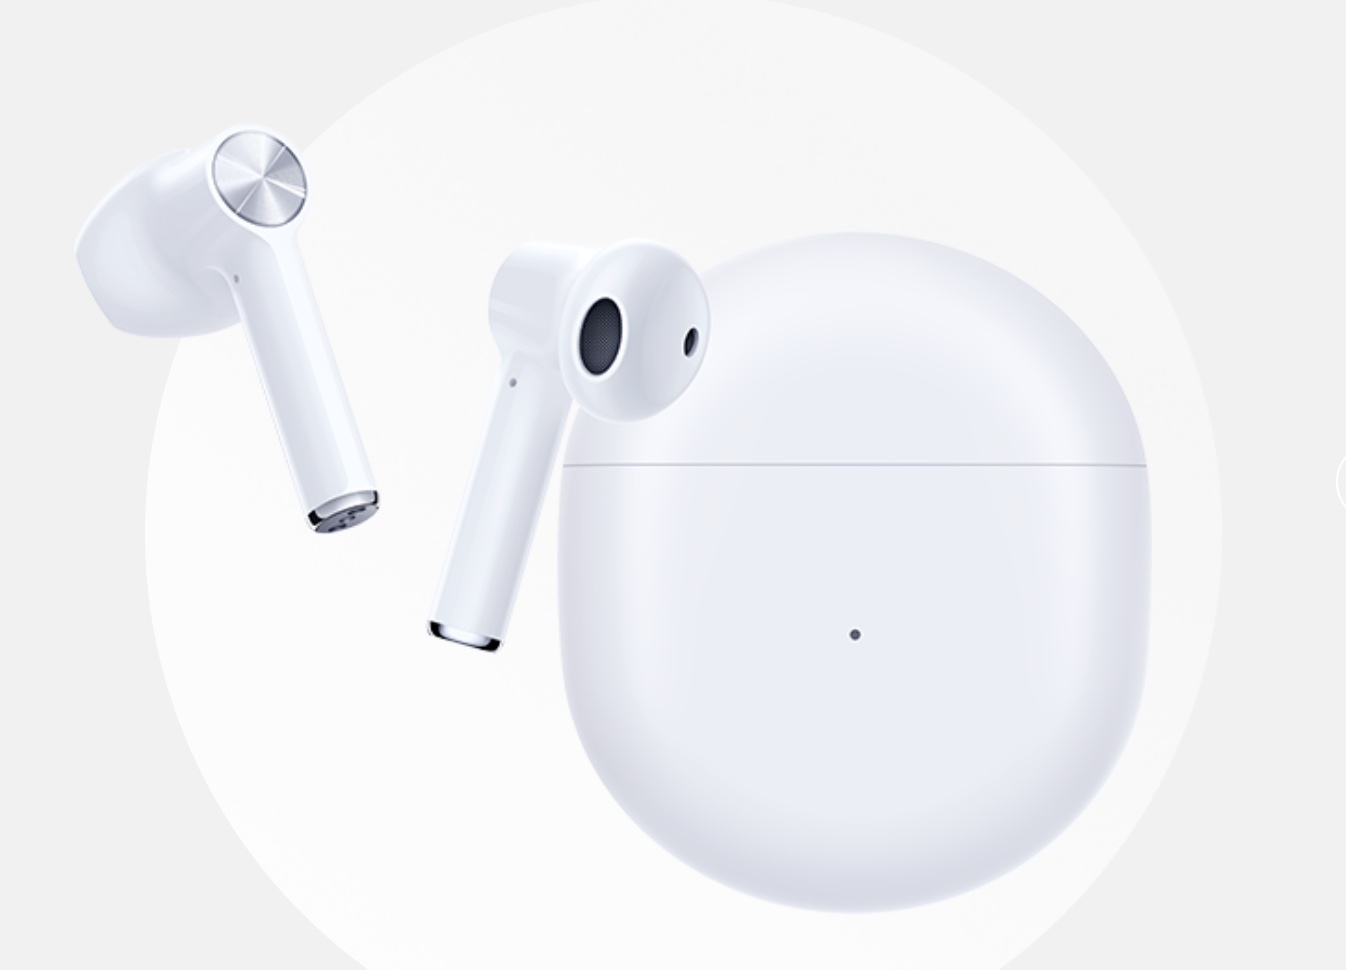 OnePlus What? US Customs mistook OnePlus earbuds for fake AirPods-cnTechPost